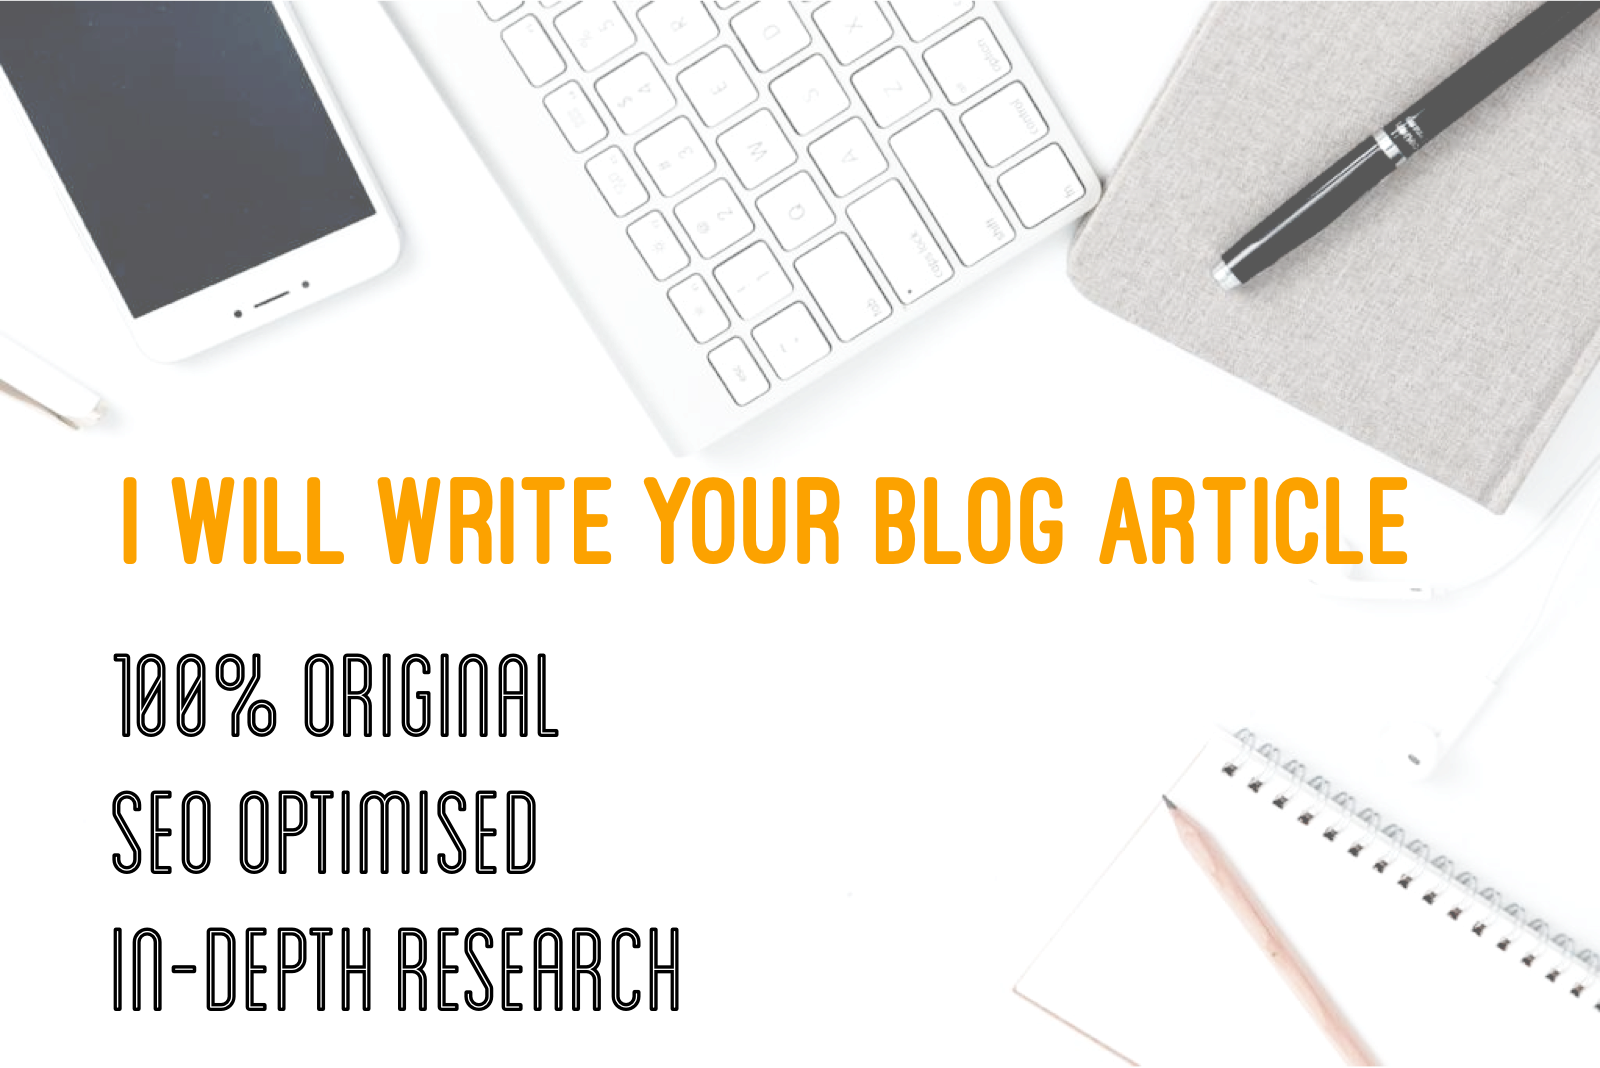 I will write 100 original blog articles